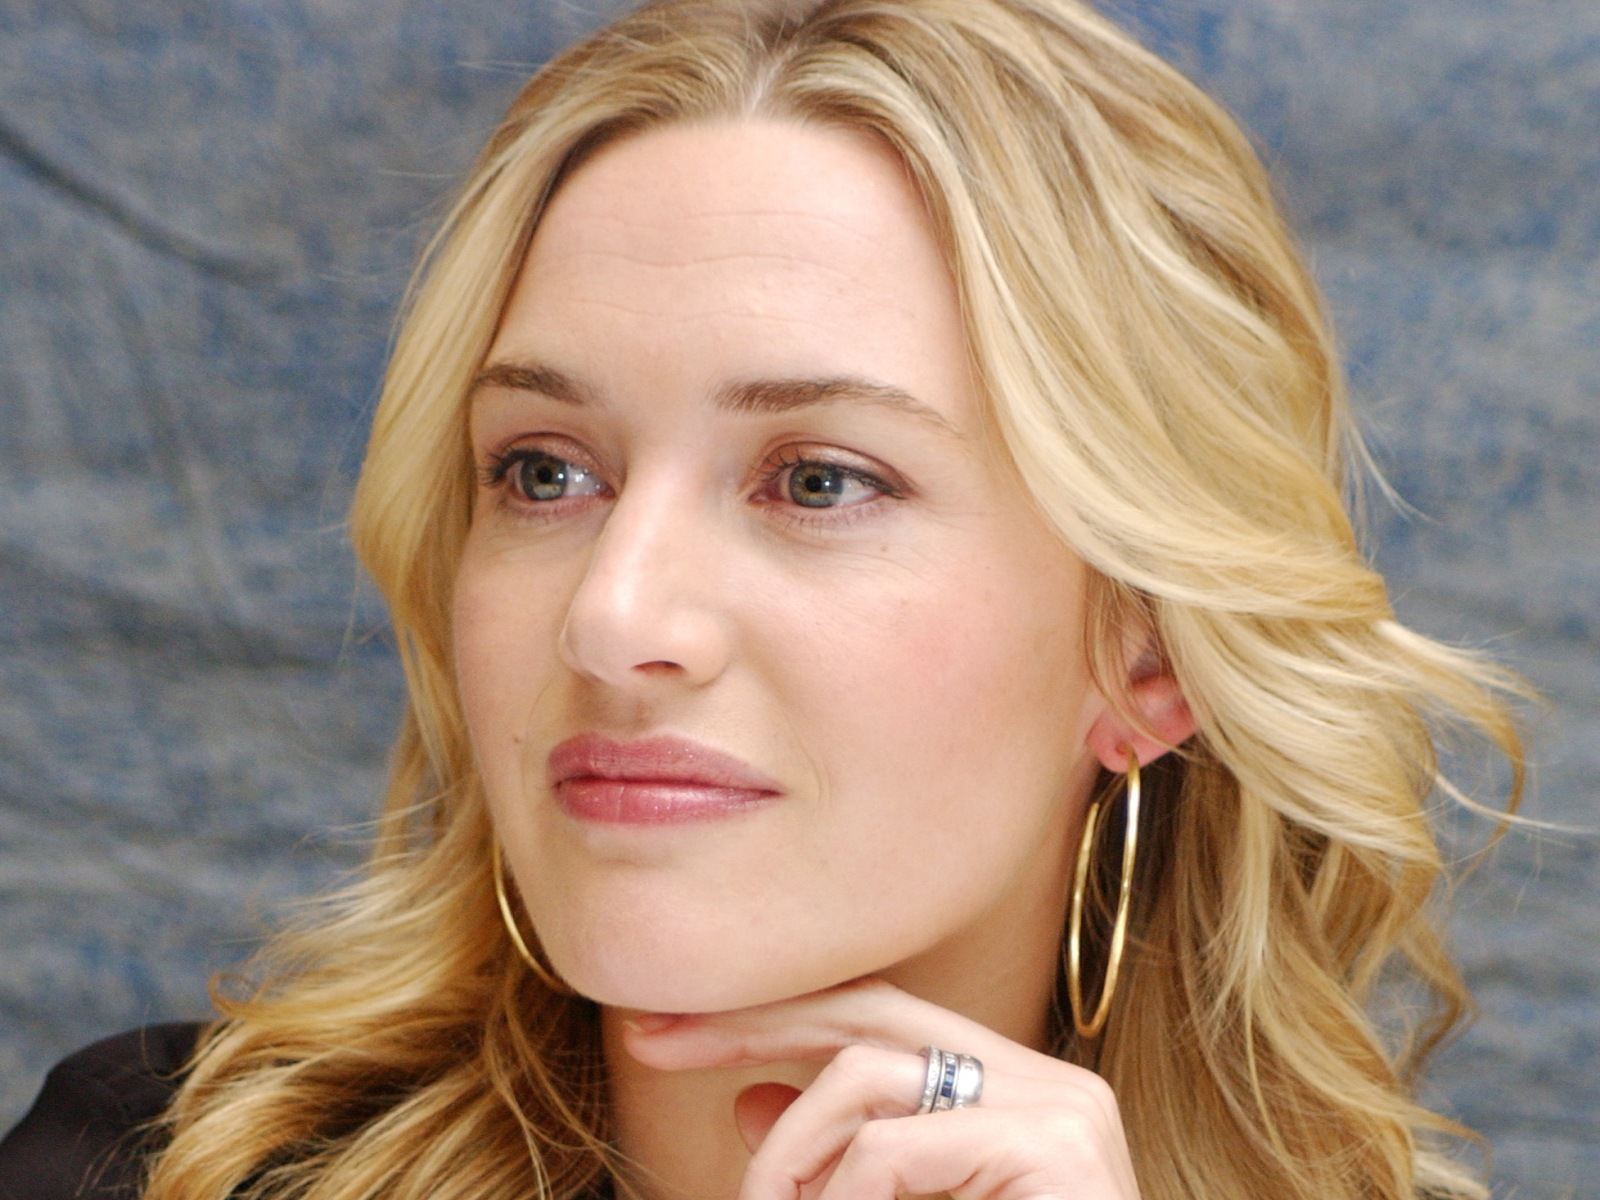 Kate Winslet Wallpapers High Resolution And Quality Download